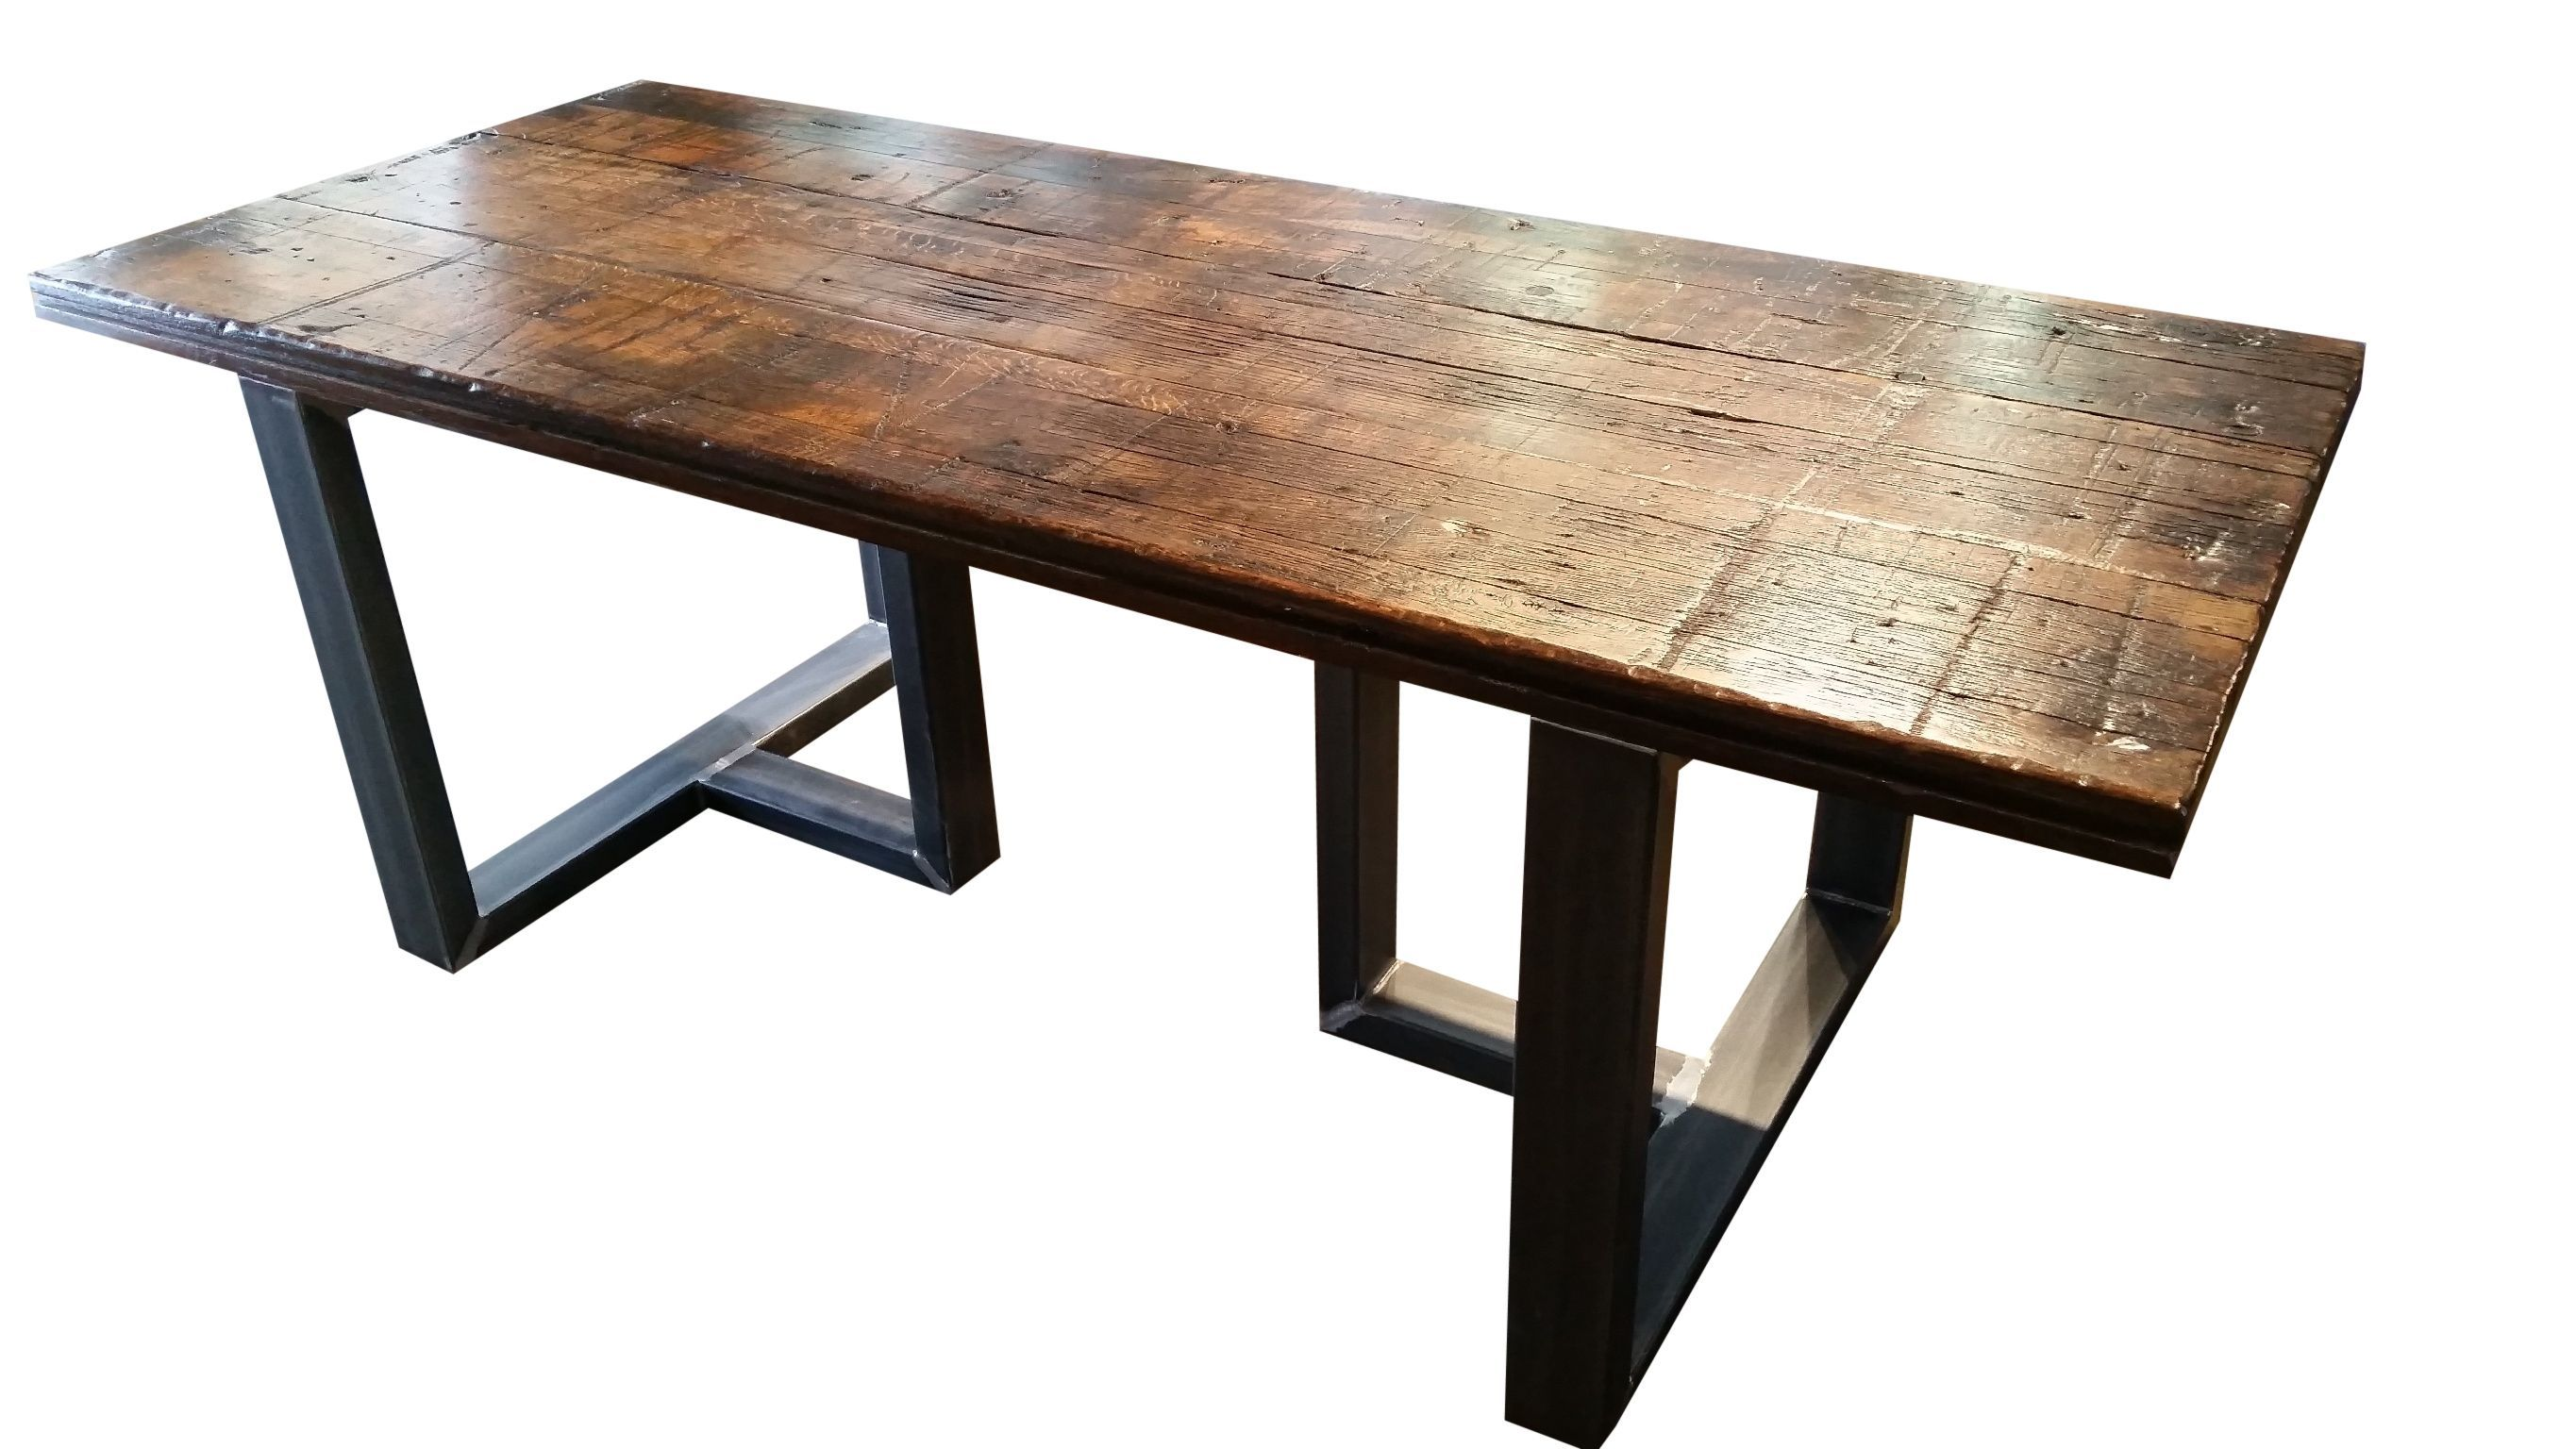 Custom made reclaimed wood dining table modern rustic for Wood top metal legs coffee table